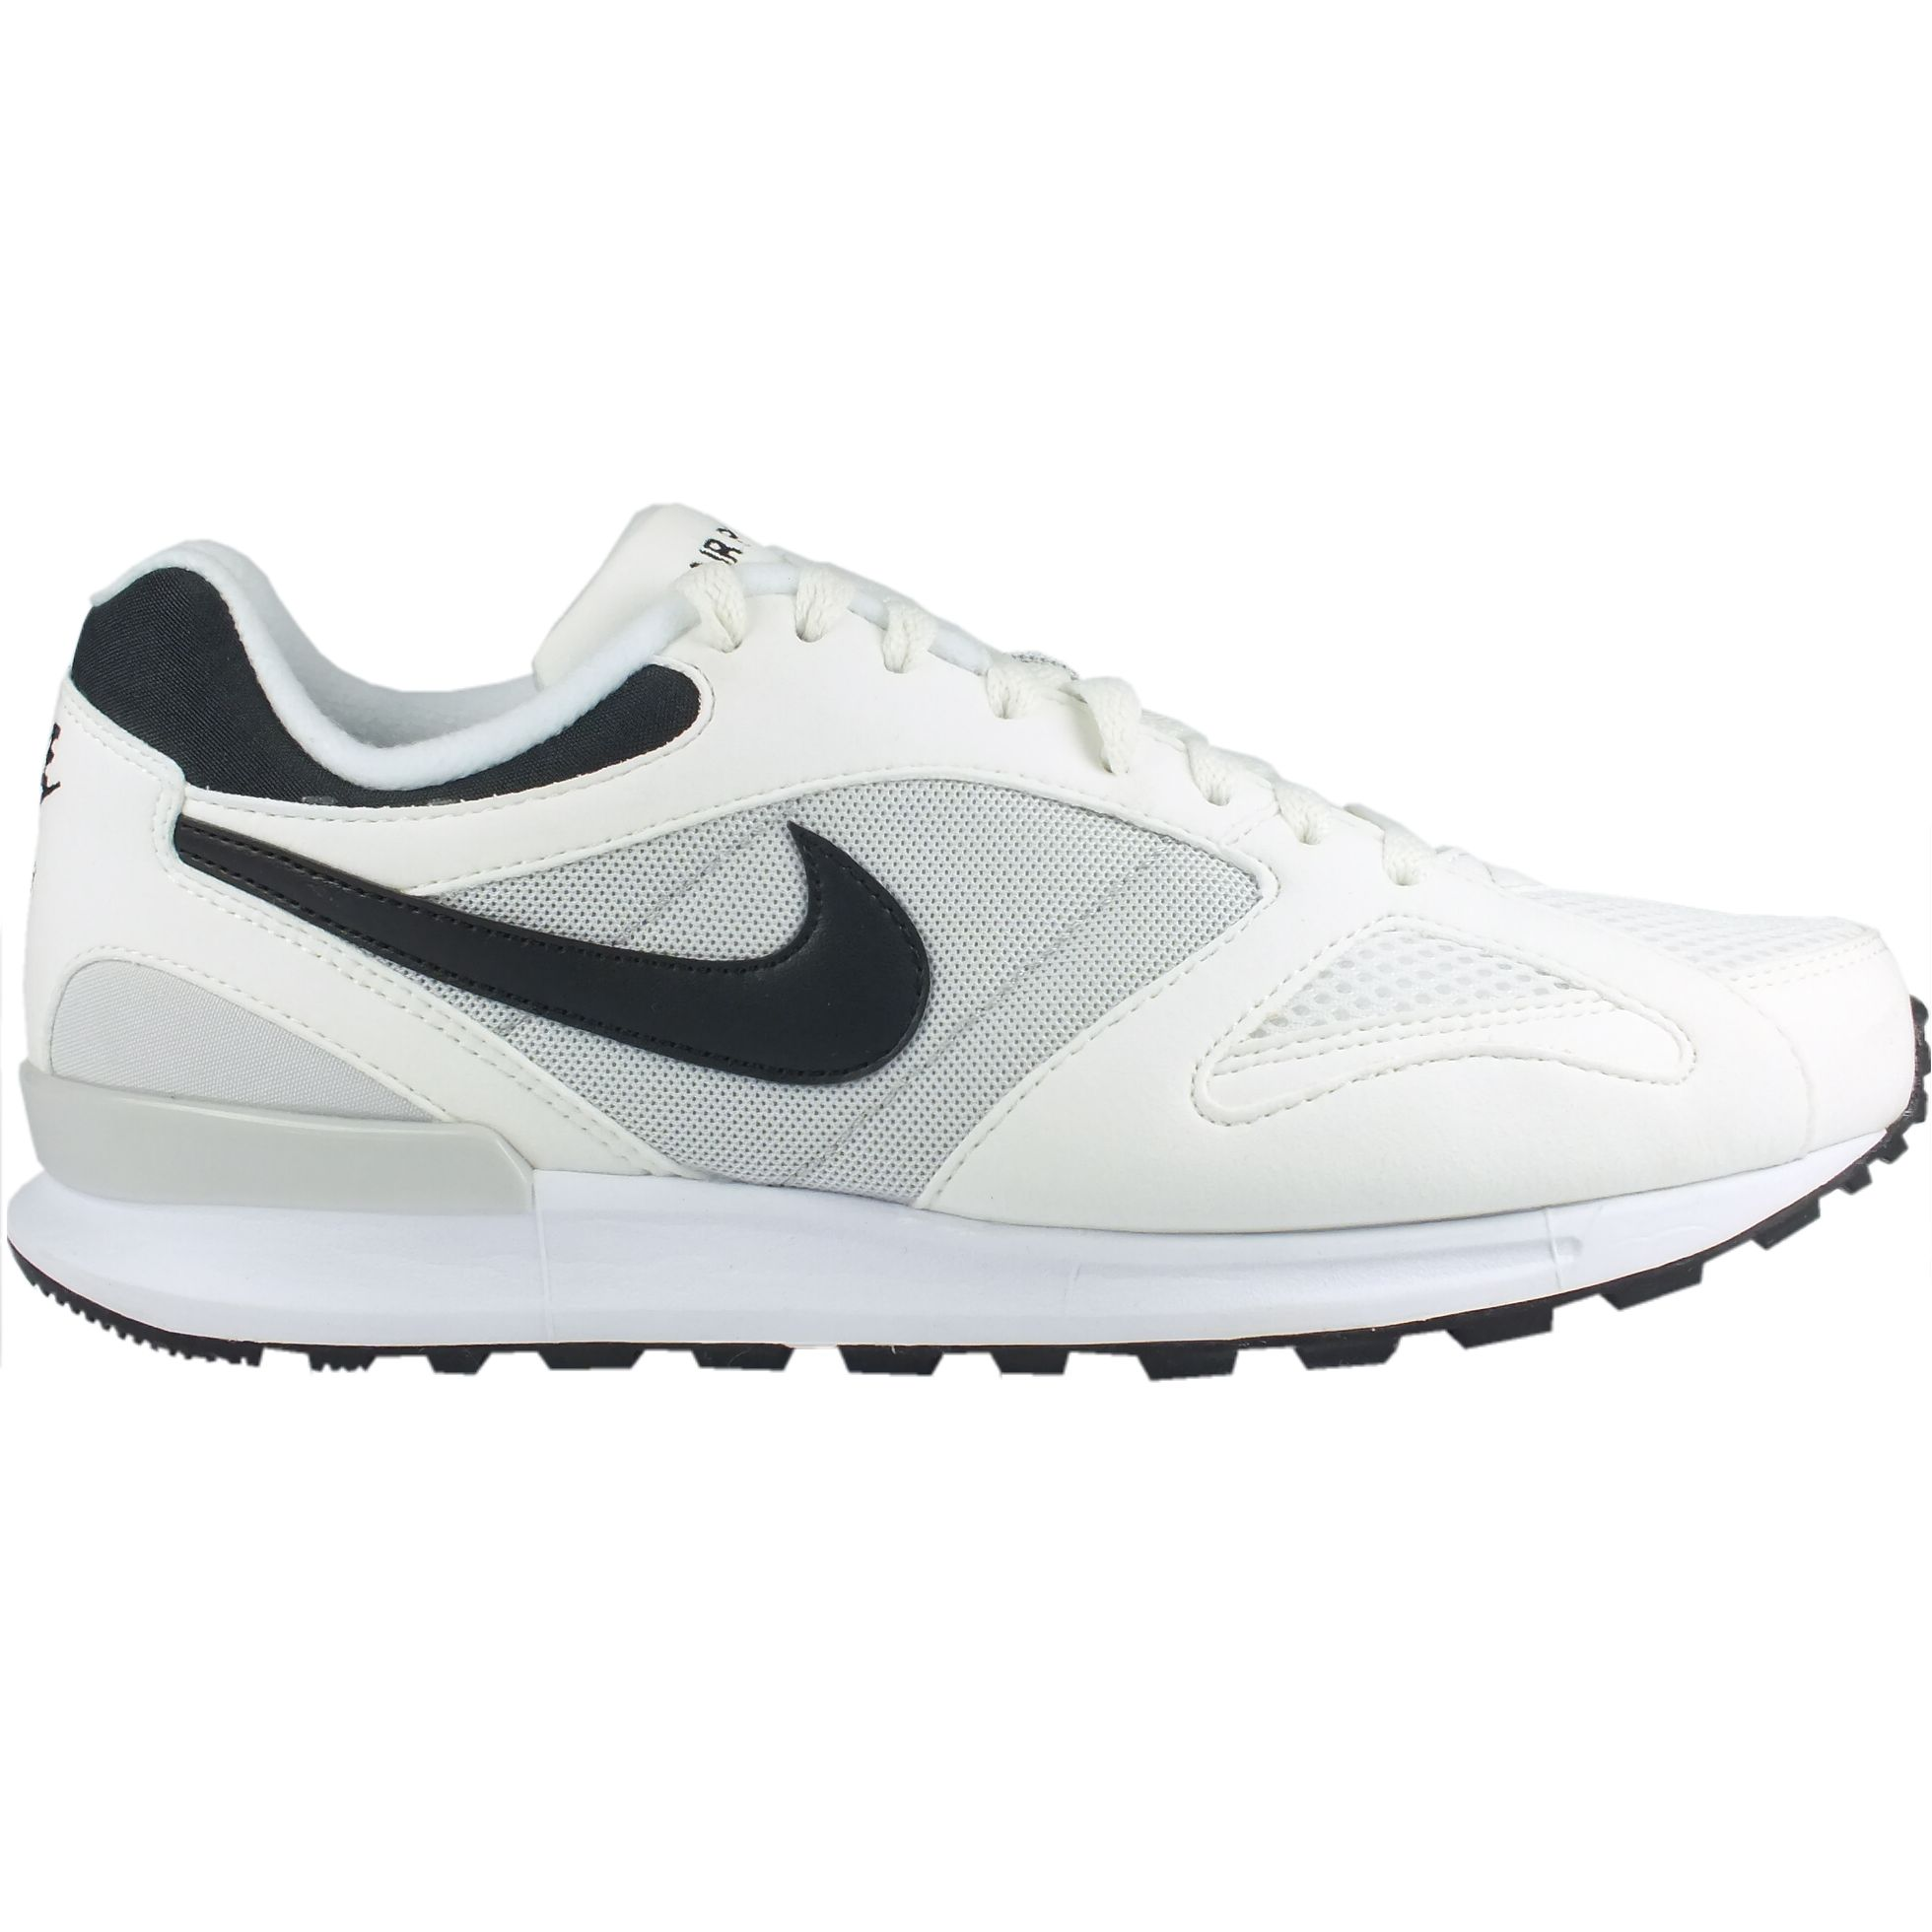 nike air pegasus racer summit schuhe sneaker turnschuhe. Black Bedroom Furniture Sets. Home Design Ideas